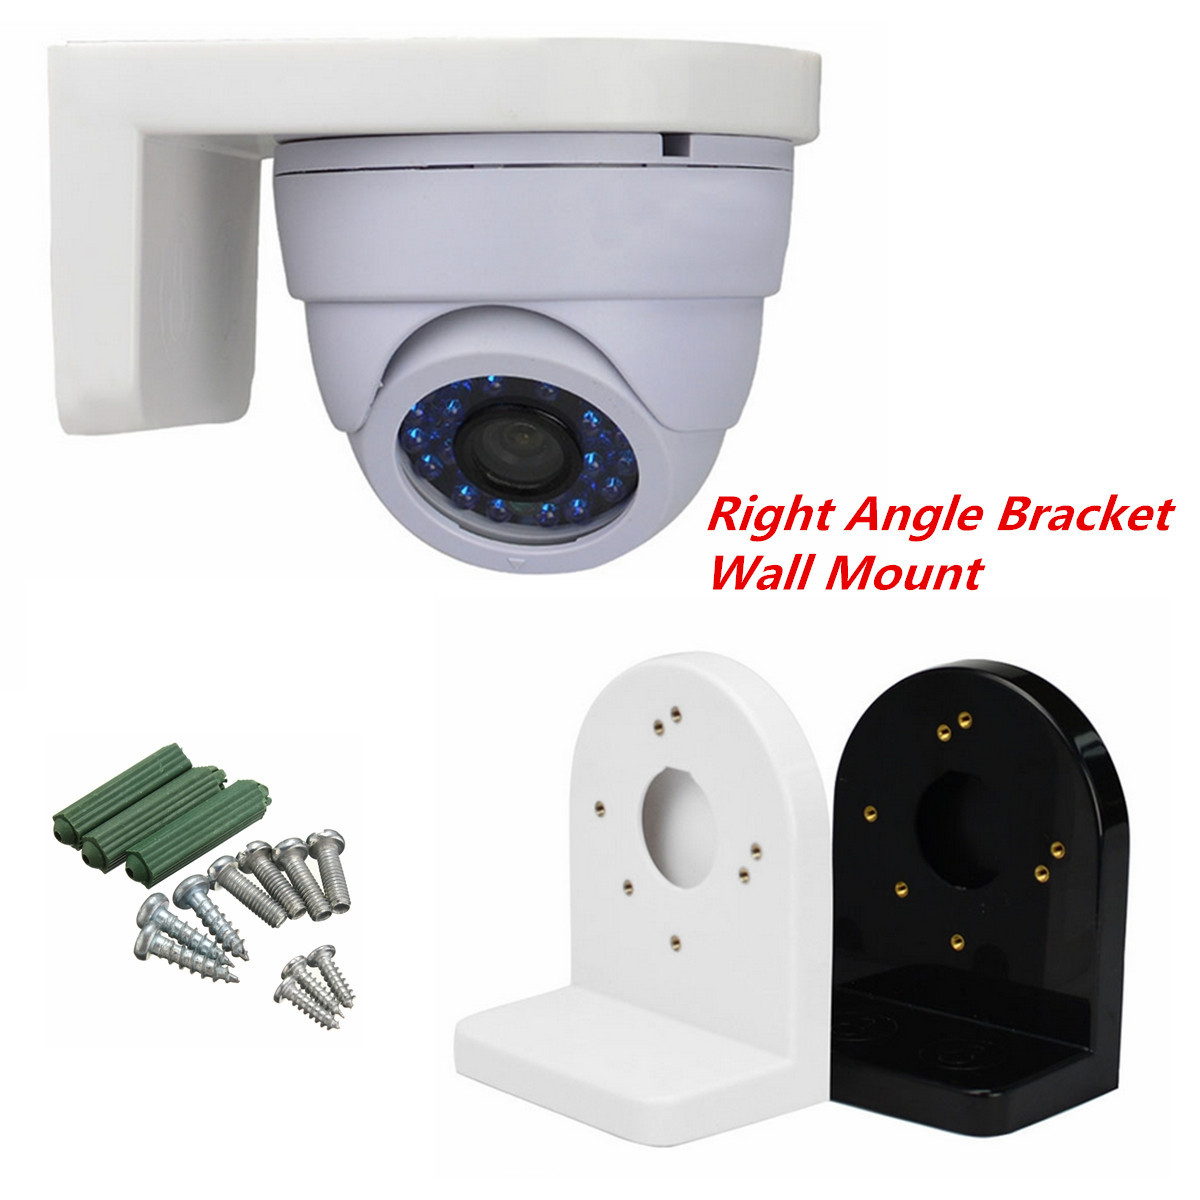 3.5 inch L Type Plastic Right Angle Bracket Wall Mount for CCTV Dome IP Security Camera3.5 inch L Type Plastic Right Angle Bracket Wall Mount for CCTV Dome IP Security Camera